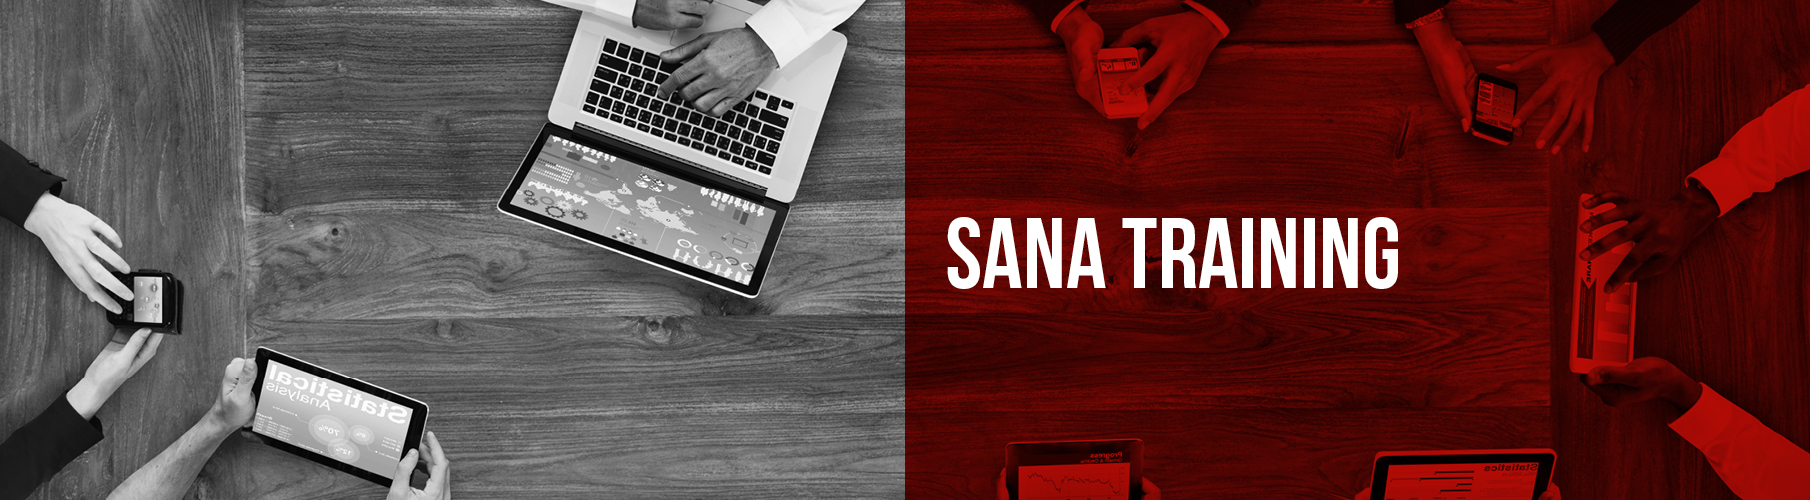 Sana University Trainings